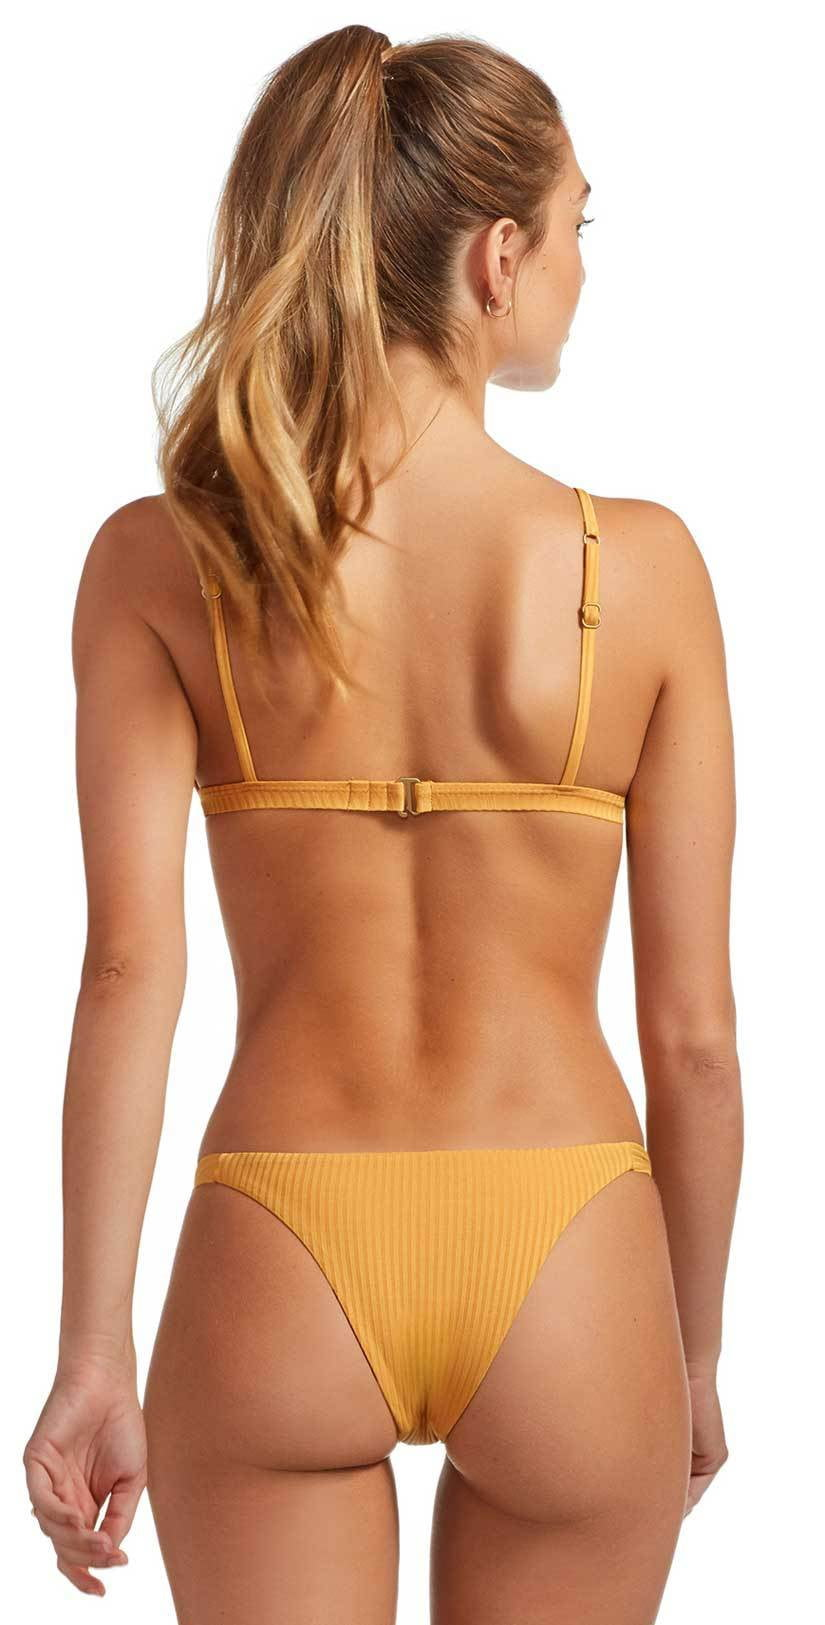 Vitamin A Carmen EcoRib Bikini Bottom in Marigold 84B ERM: